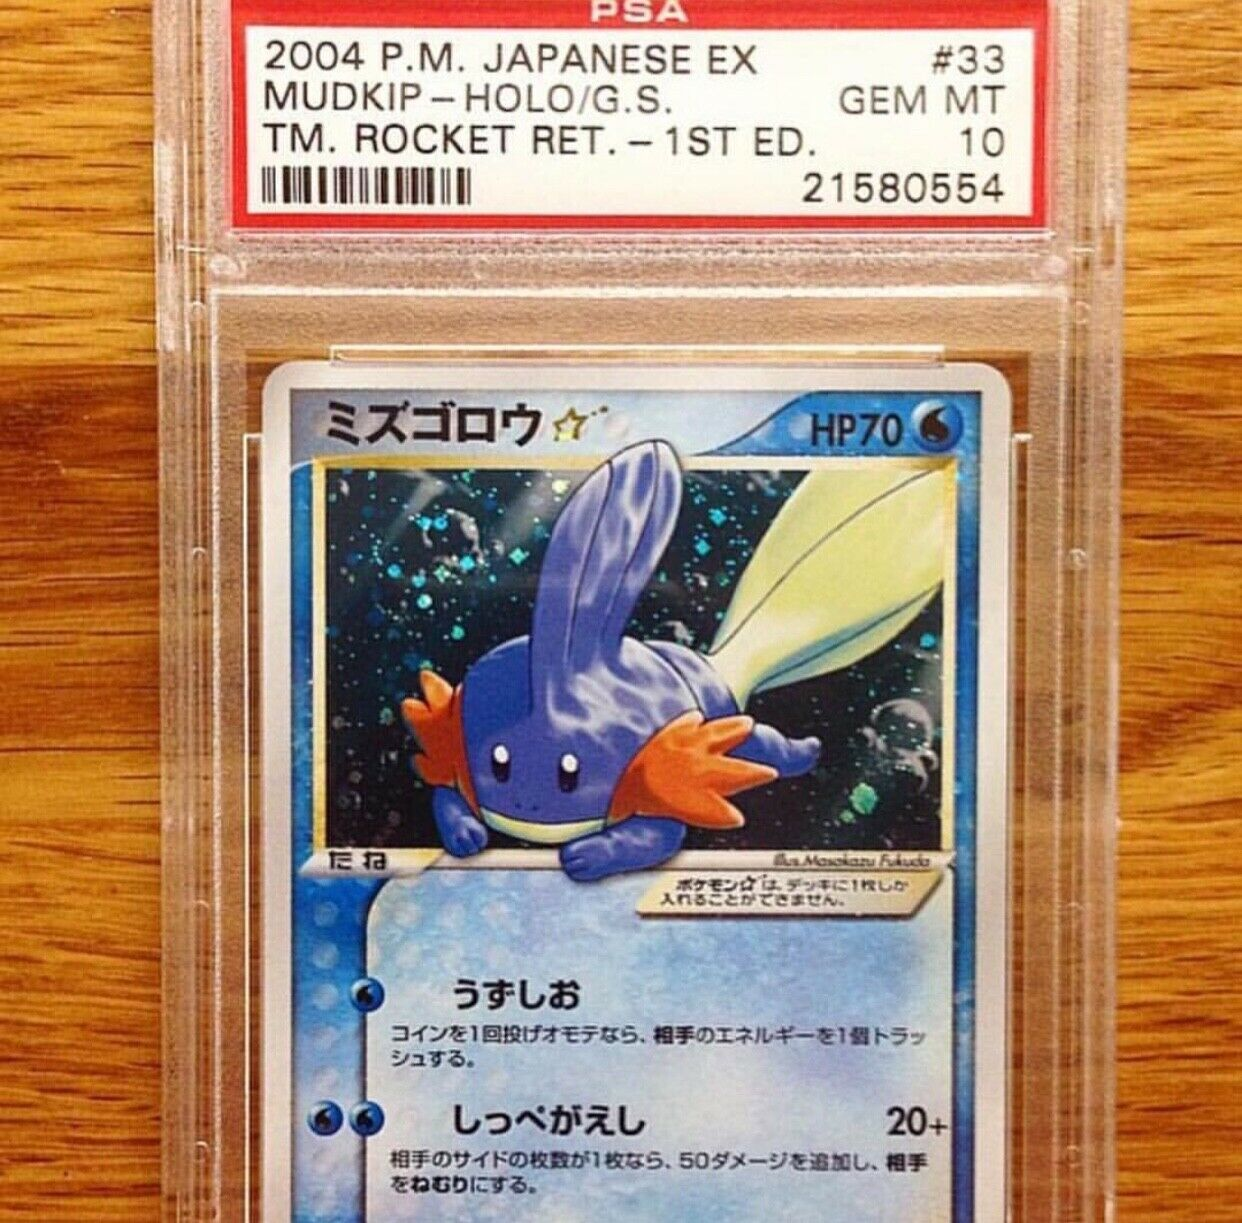 POKEMON JAPANESE PSA 10 MUDKIP GOLD STAR EX TEAM ROCKET RETURNS 1ST ED MINT CARD